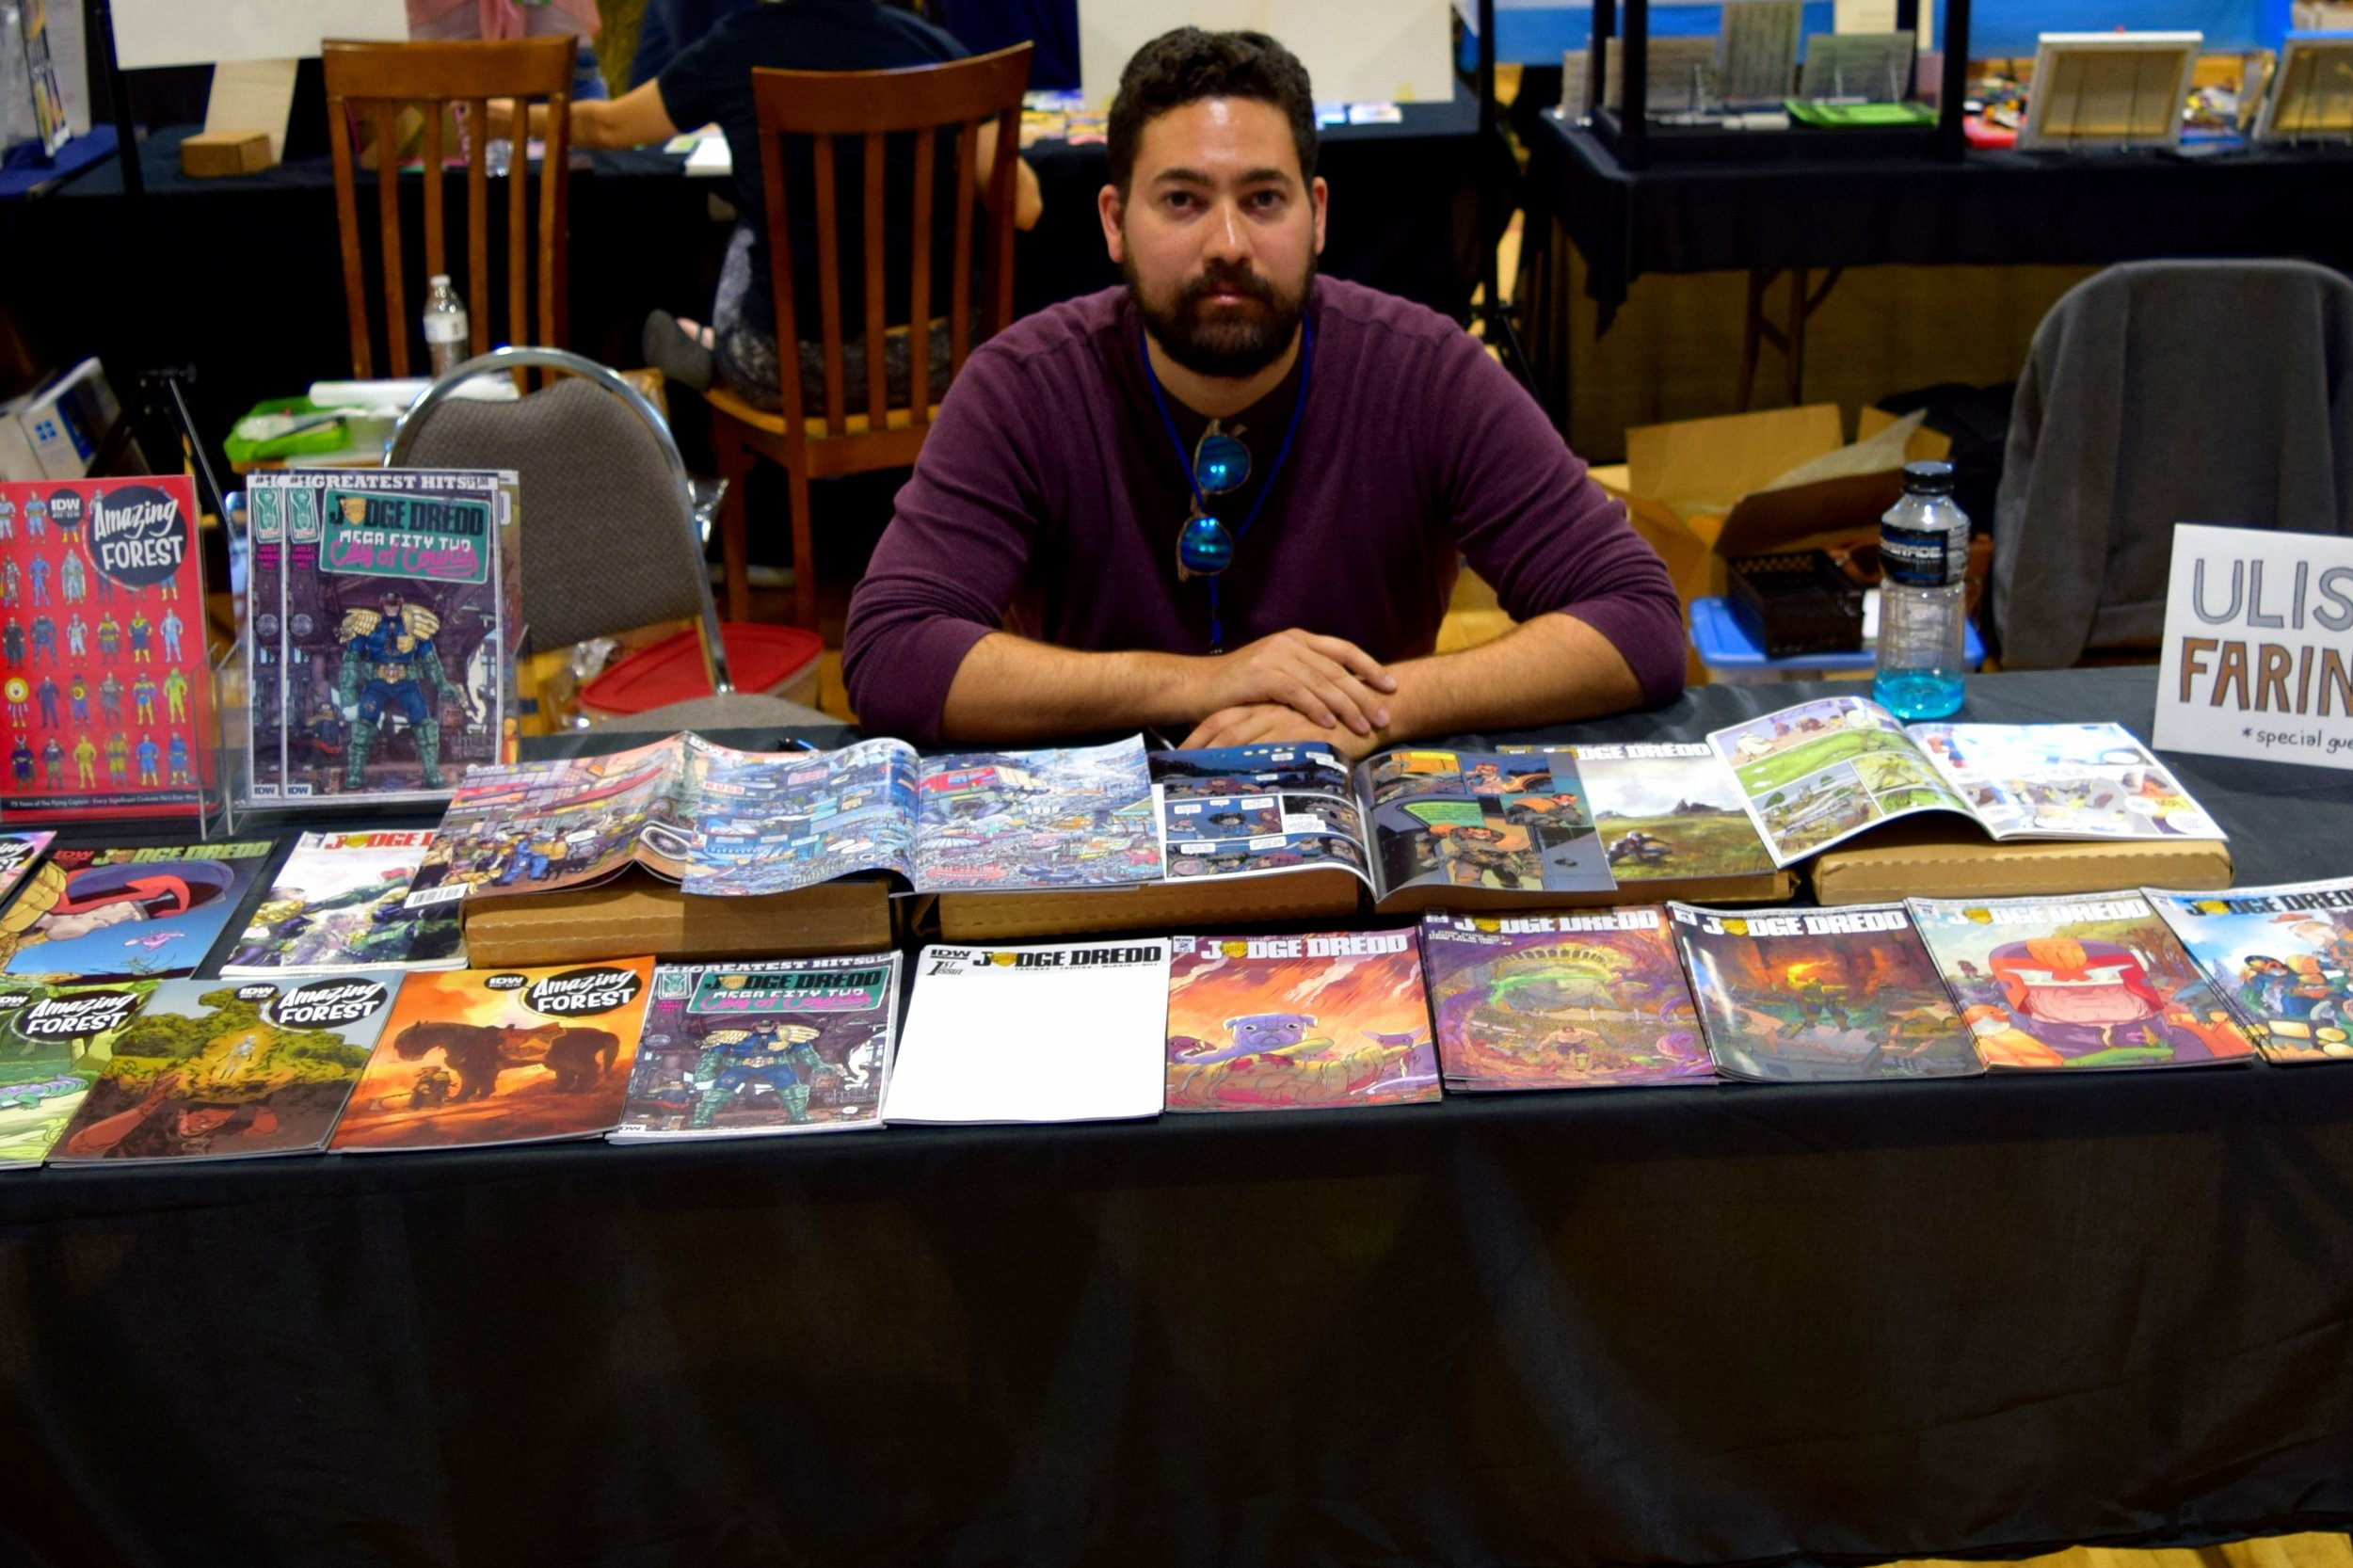 Ulises Farinas at Fort Collins Comic Con 2016 (1).